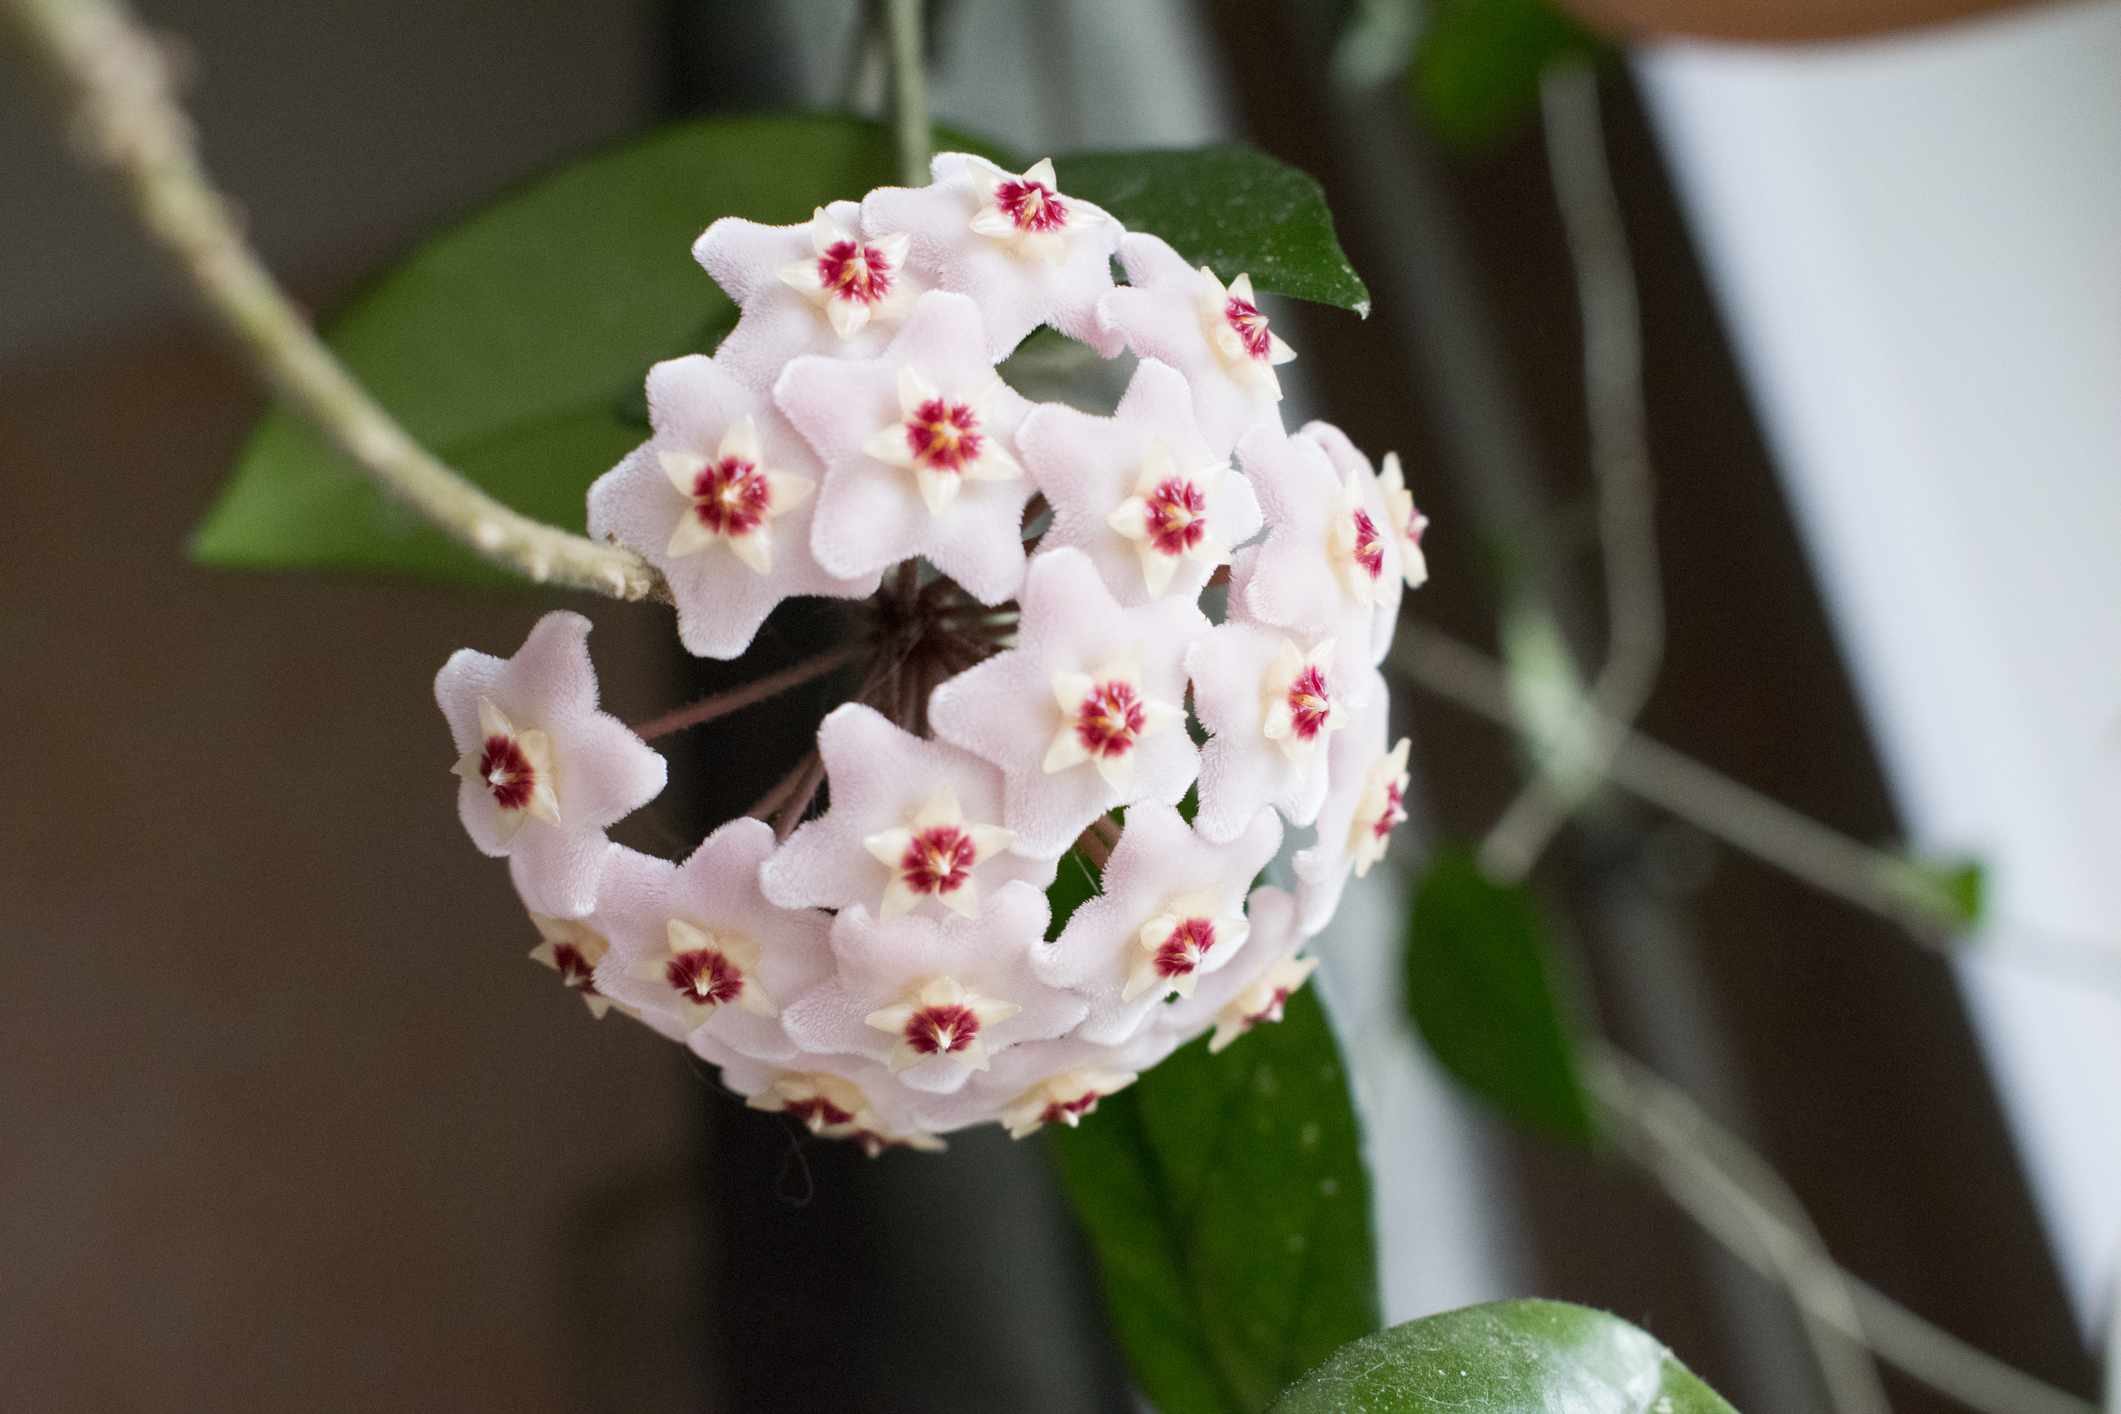 Close-up detail photo of flower wax plant or Hoya Carnosa